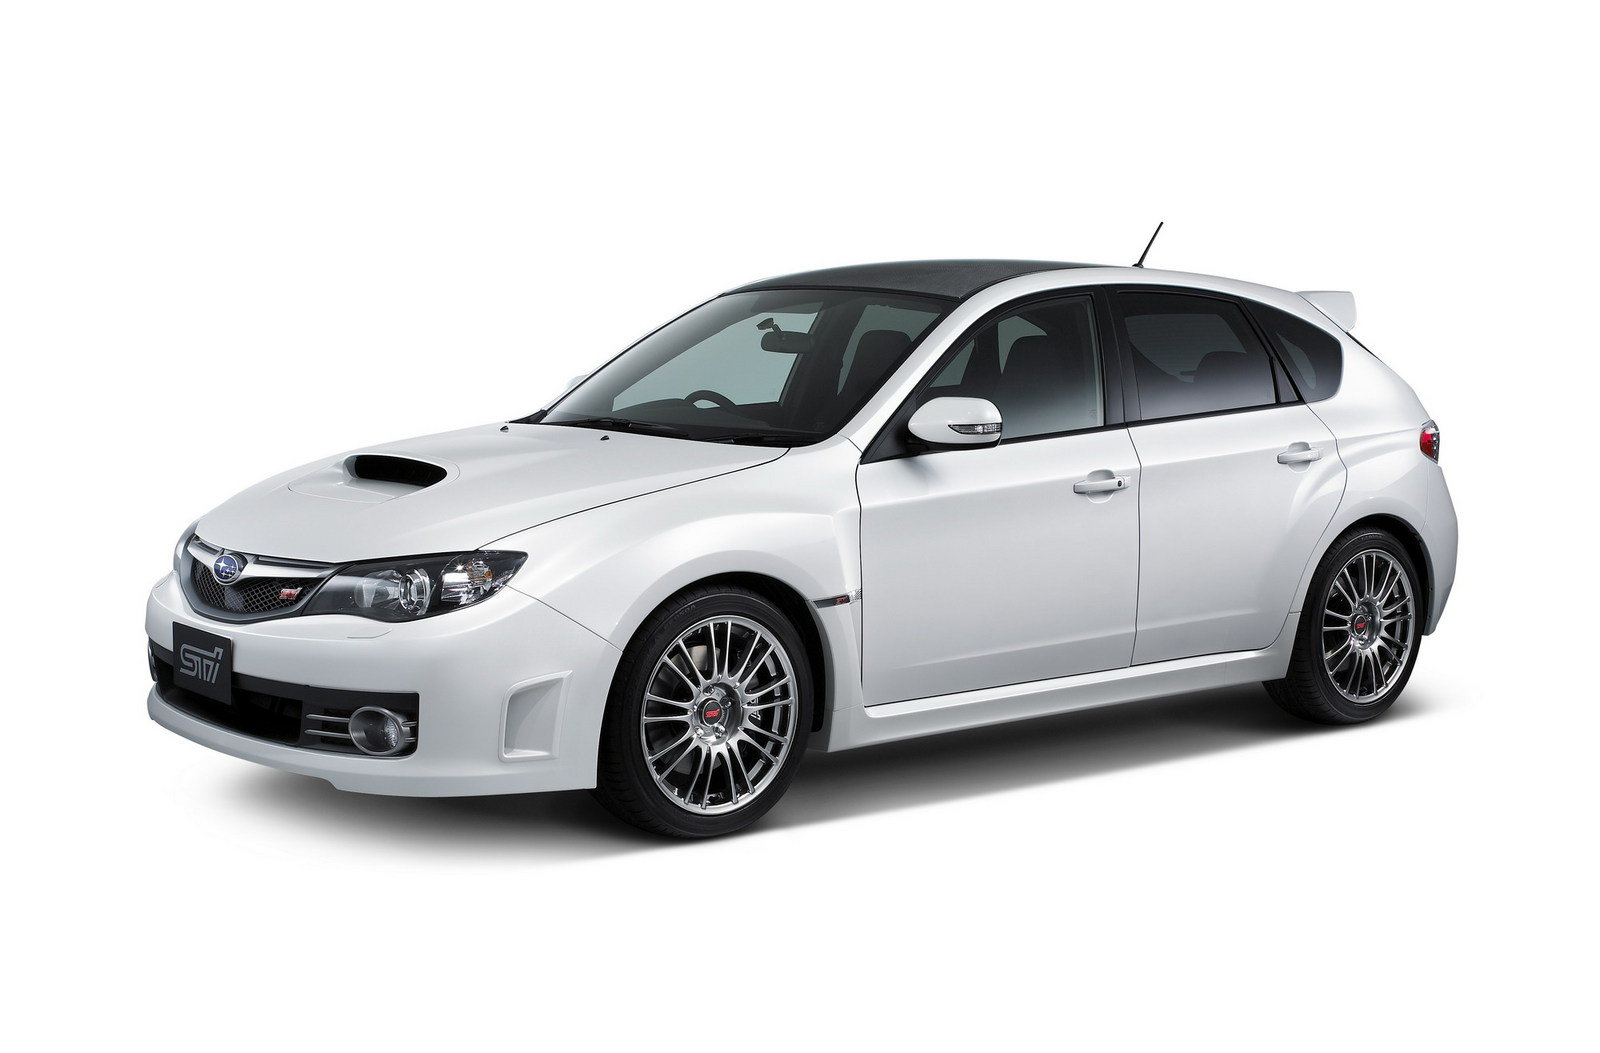 2010 subaru impreza wrx sti carbon review gallery top speed. Black Bedroom Furniture Sets. Home Design Ideas